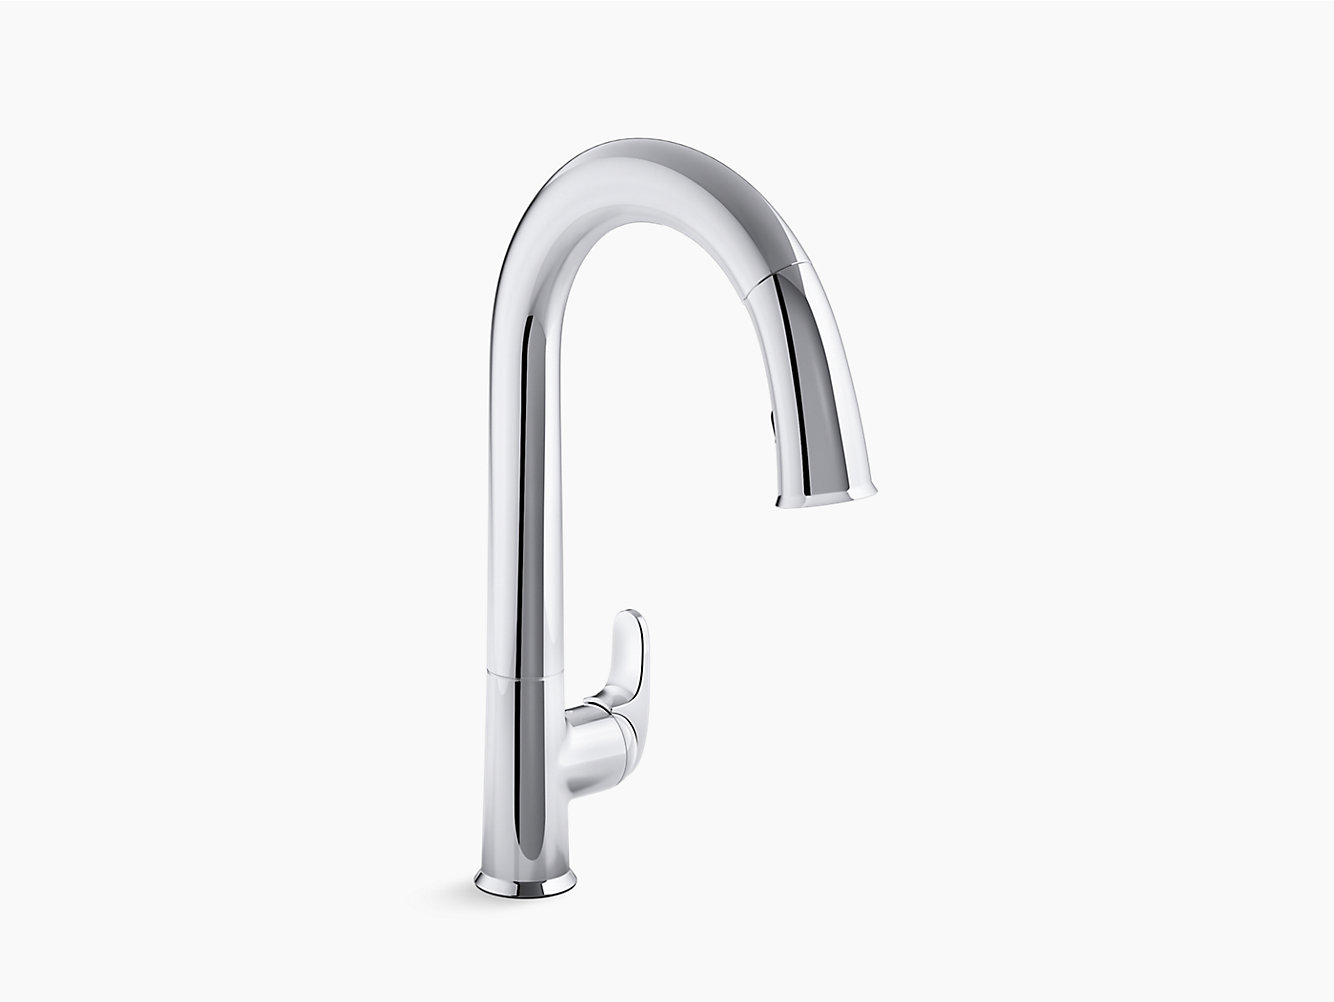 k-72218 | sensate touchless pull-down kitchen sink faucet